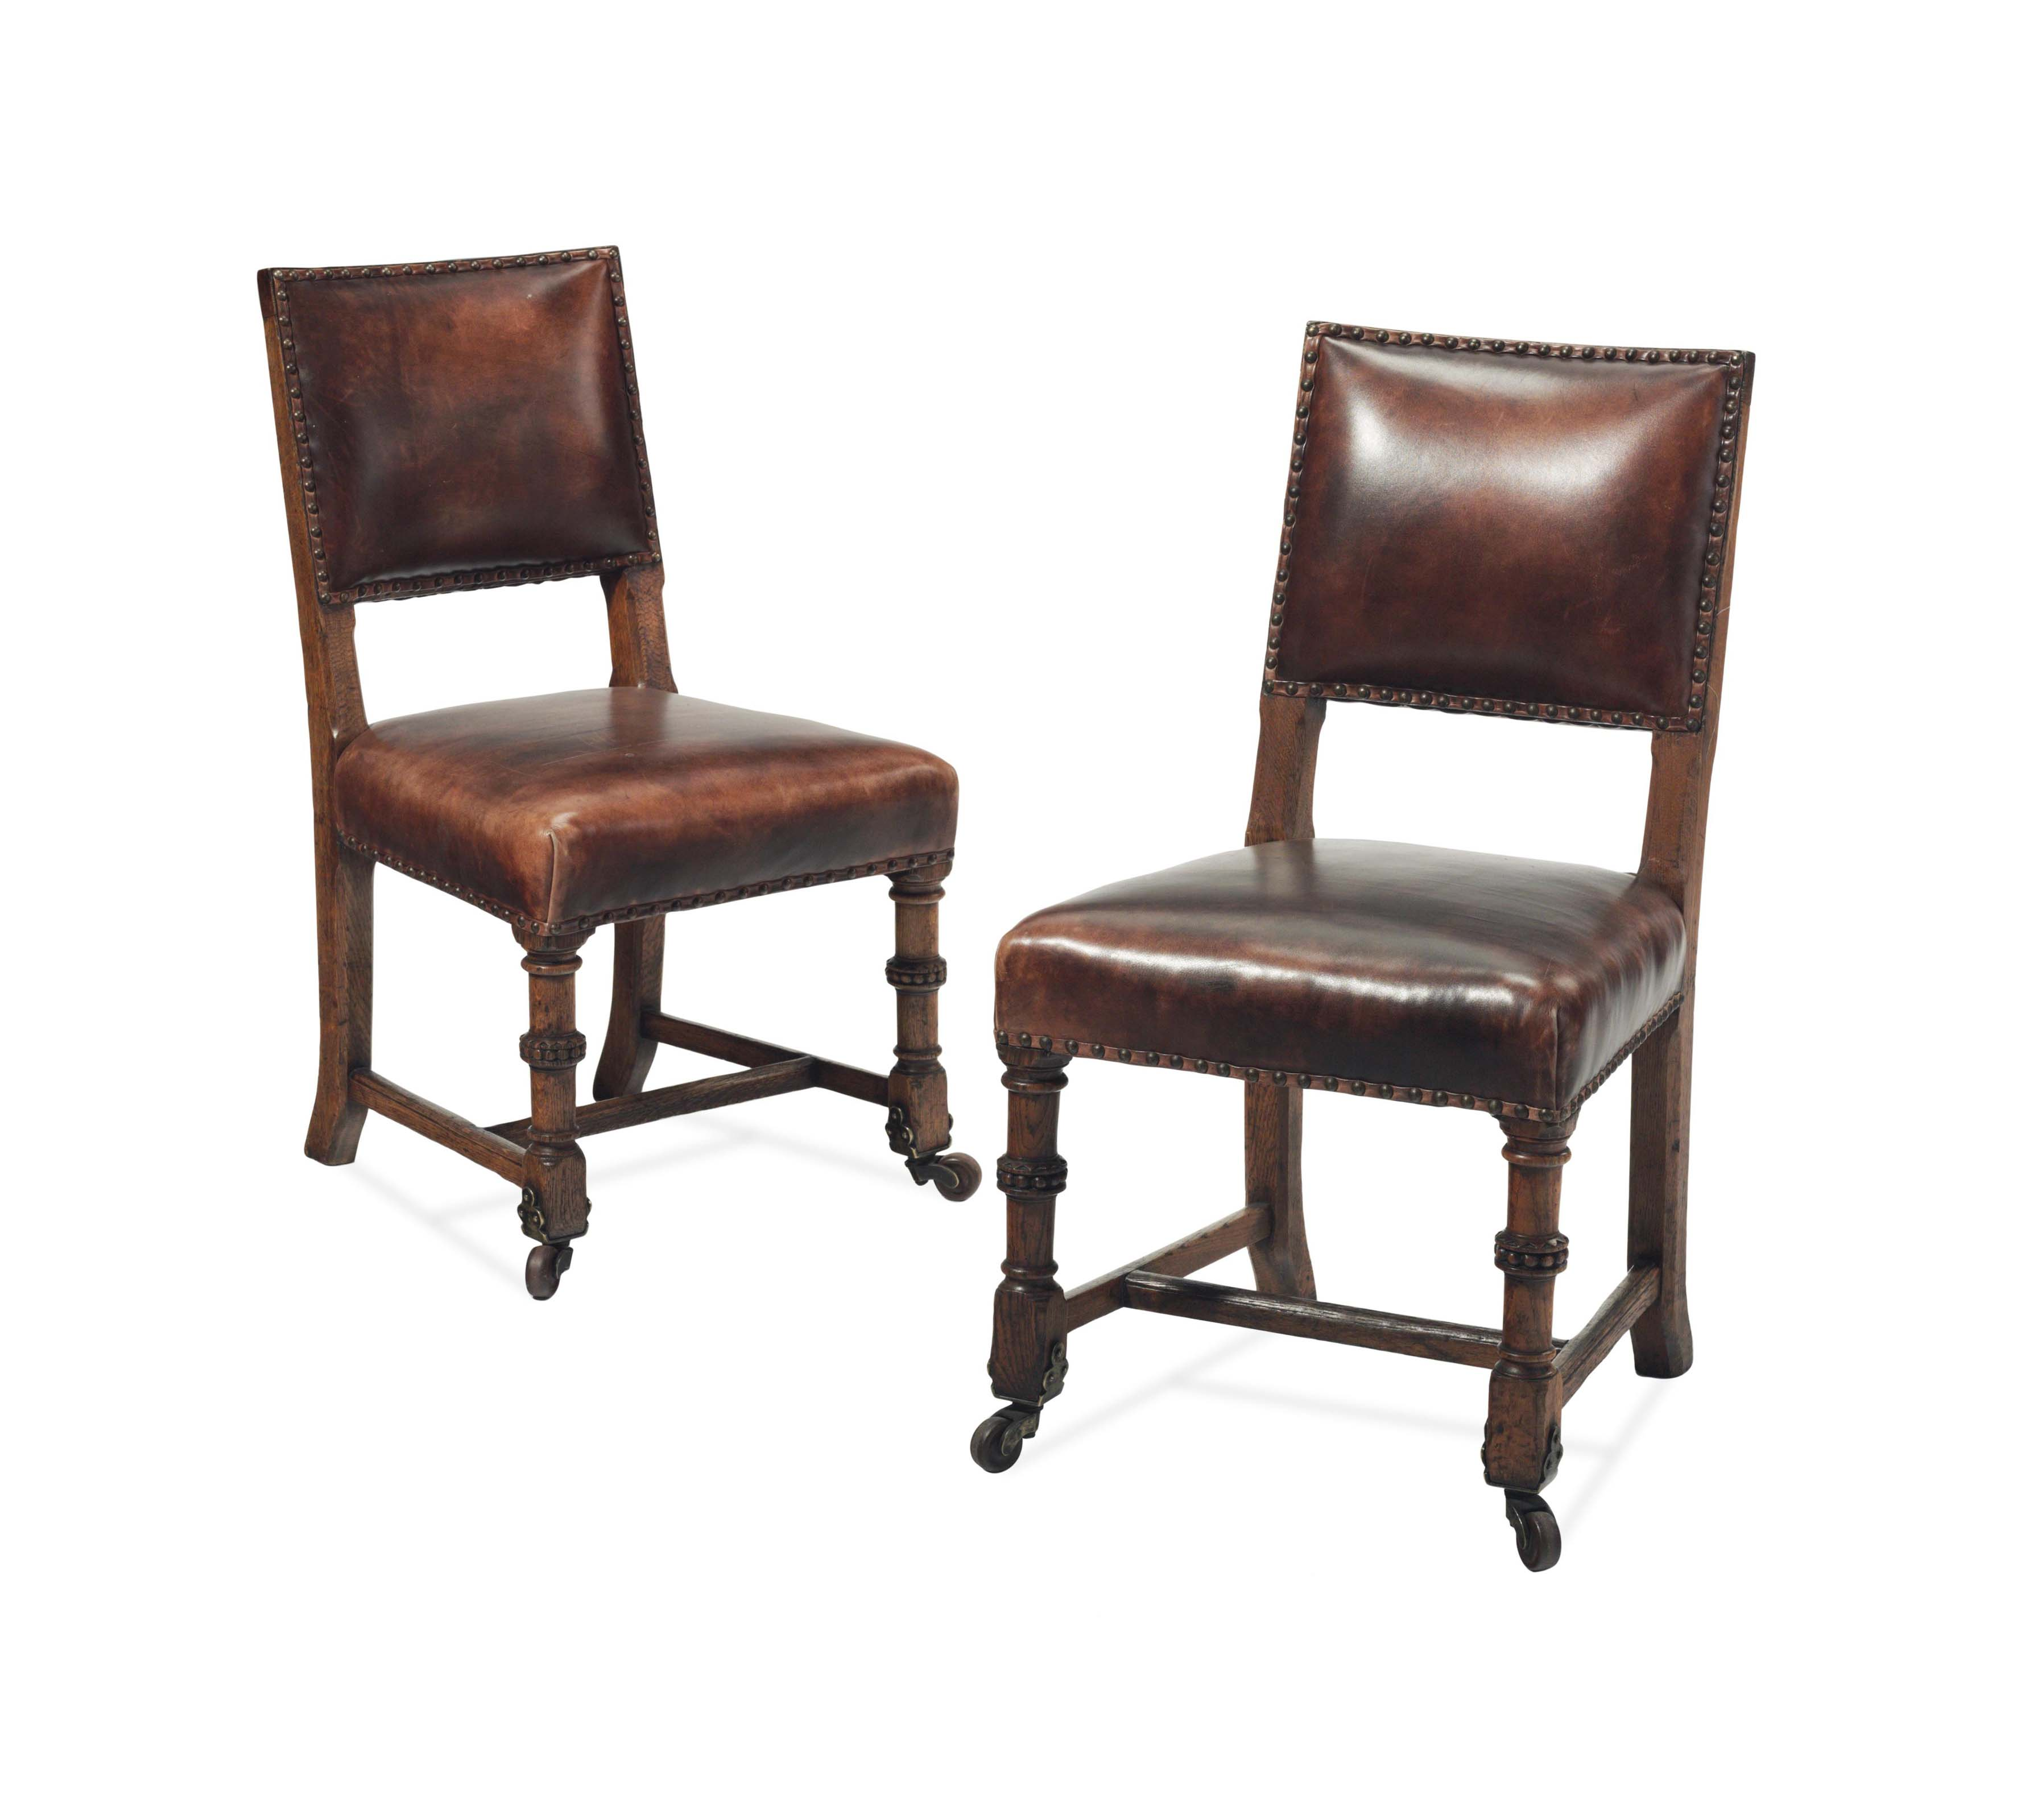 A SET OF NINE ENGLISH ARTS AND CRAFTS OAK LEATHER-UPHOLSTERED DINING CHAIRS,